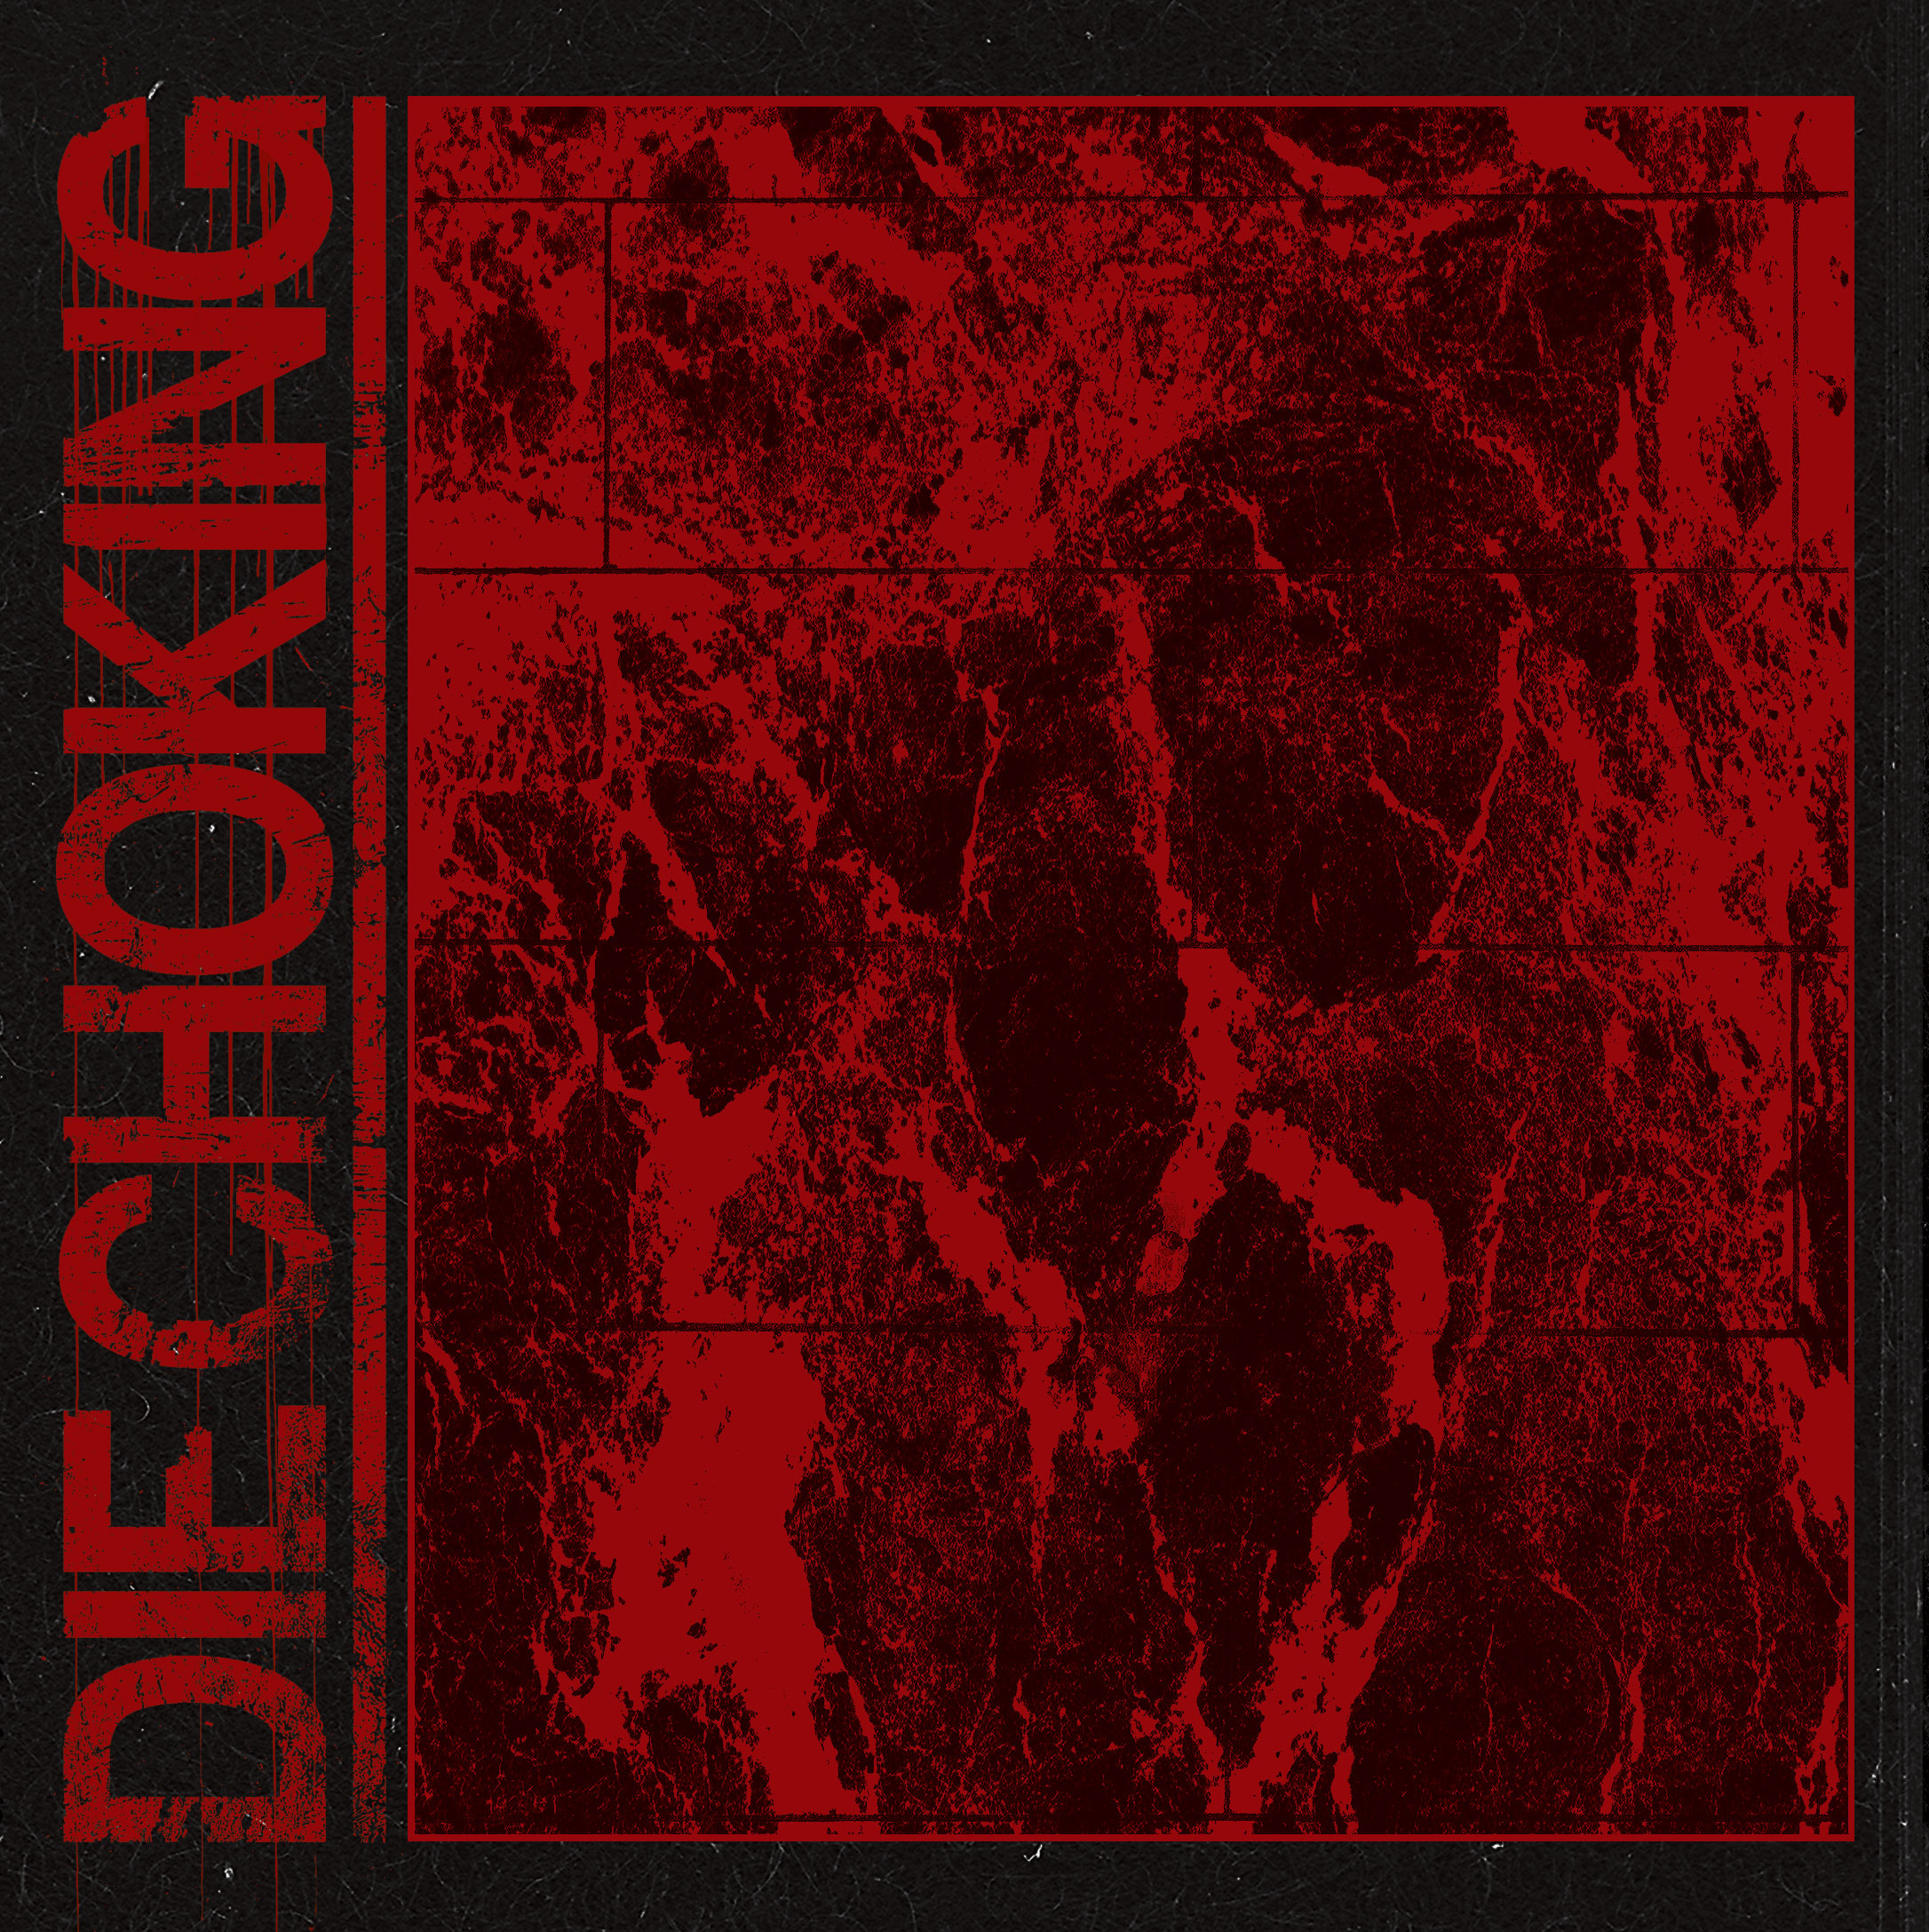 die-choking-ep-II-cover